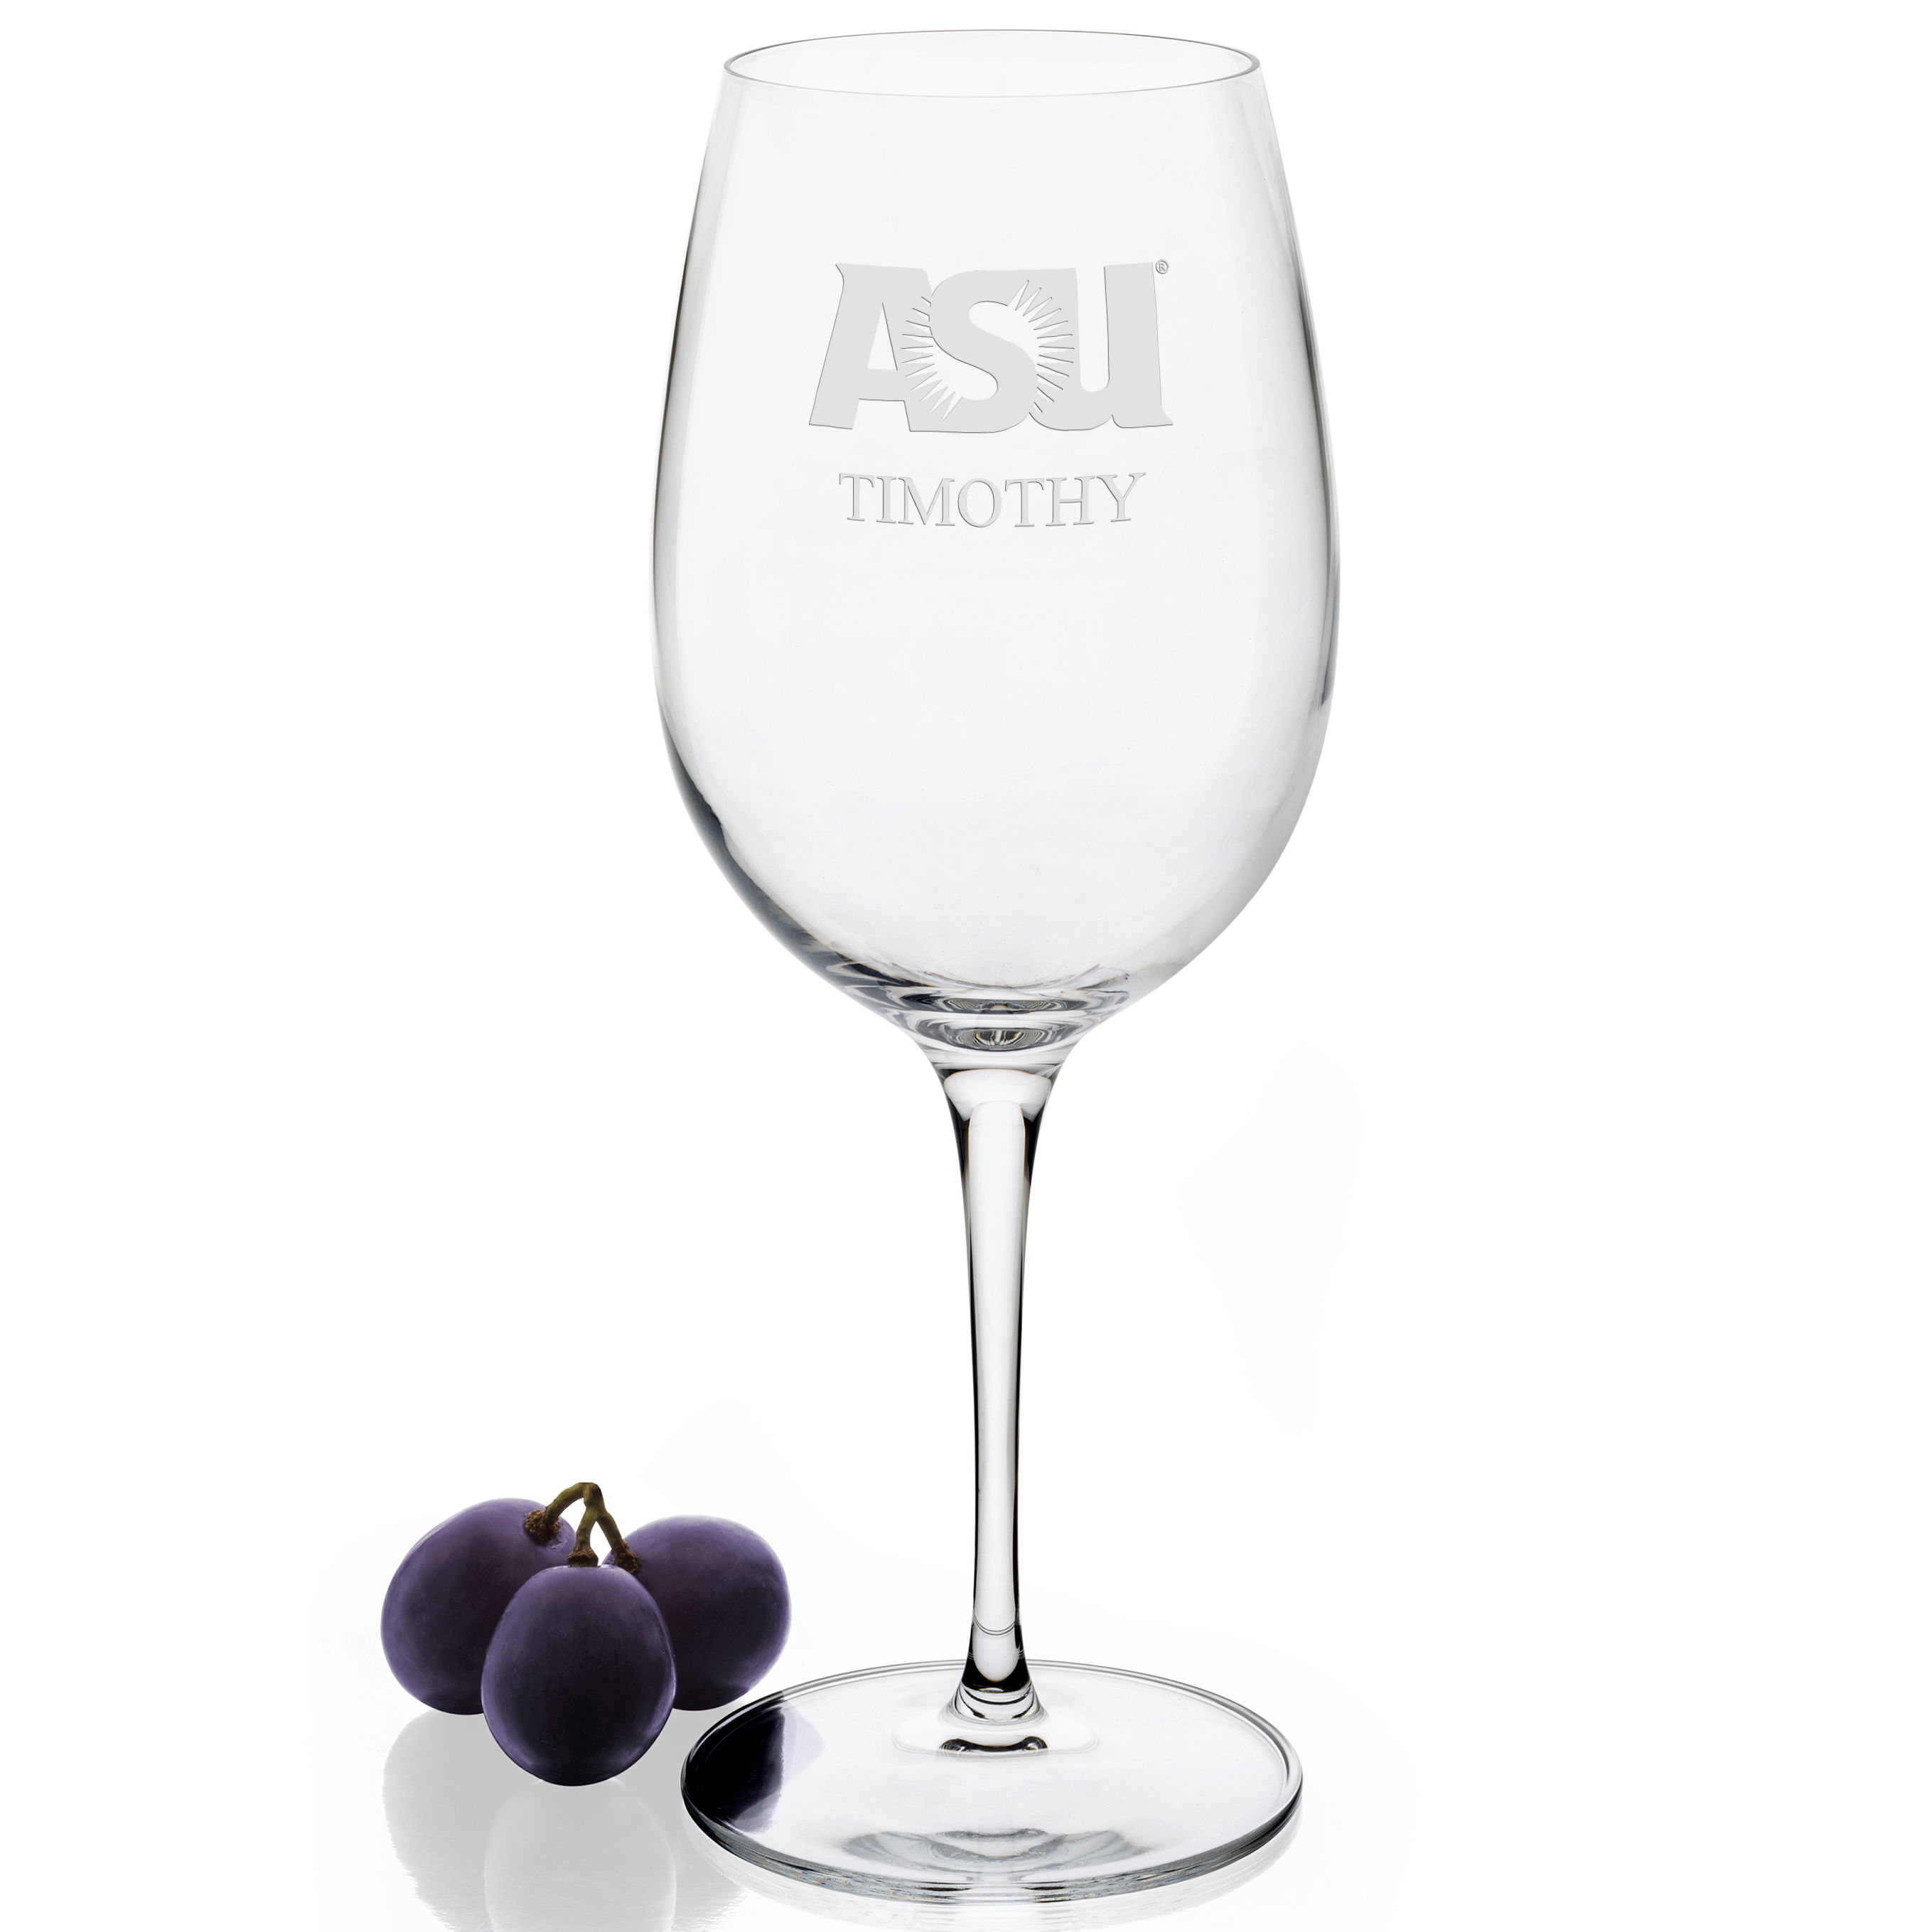 ASU Red Wine Glasses - Set of 2